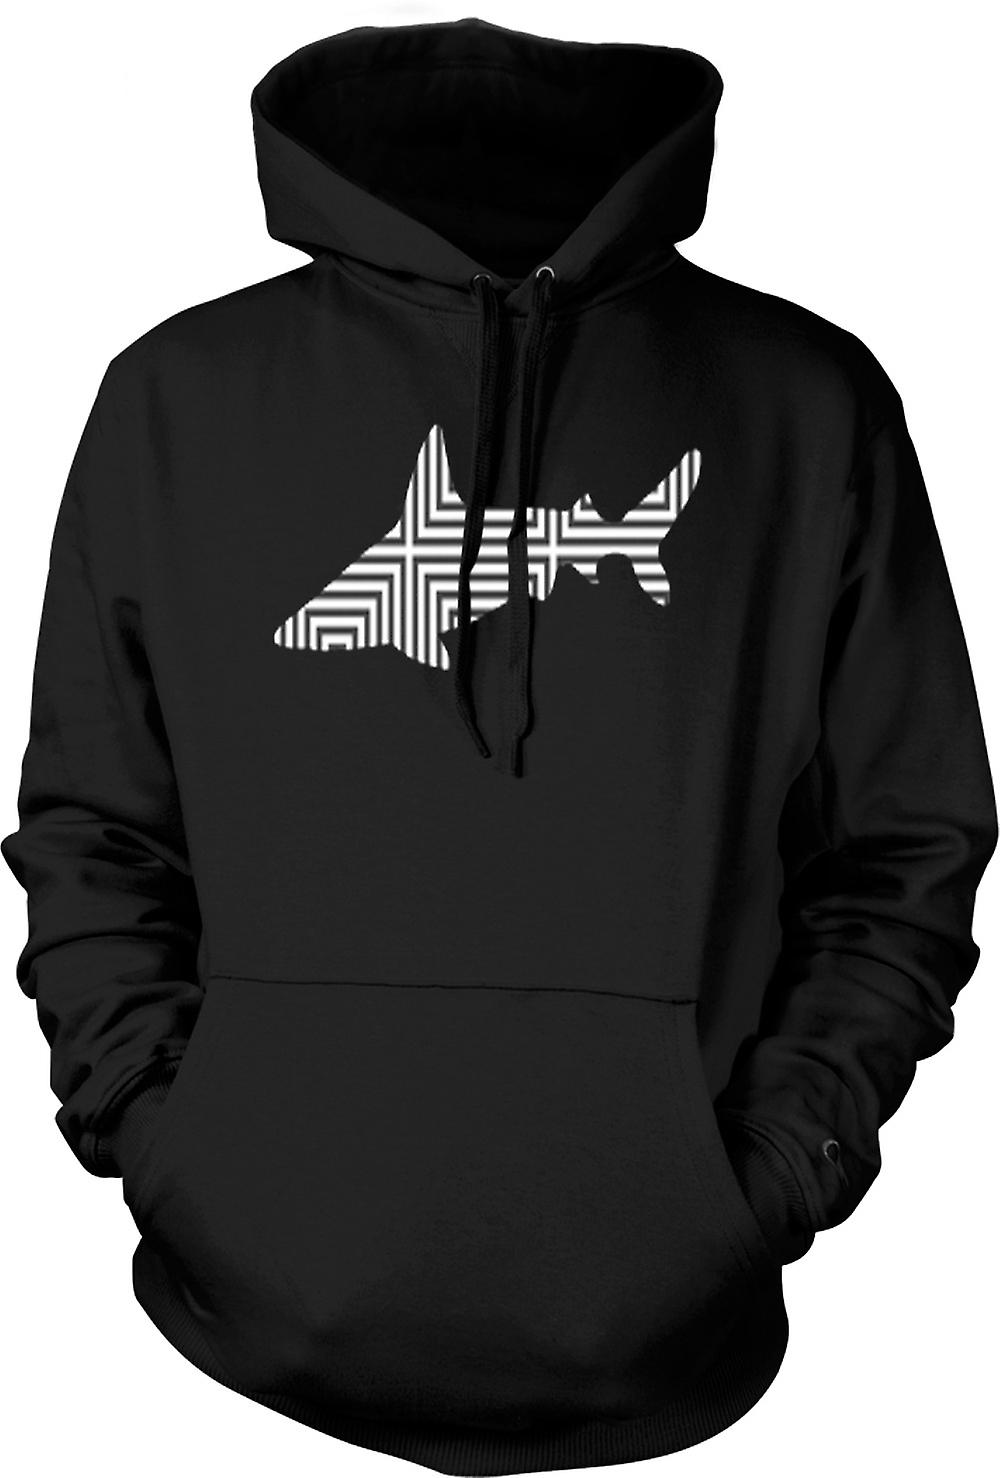 Mens Hoodie - Shark With Pattern Design